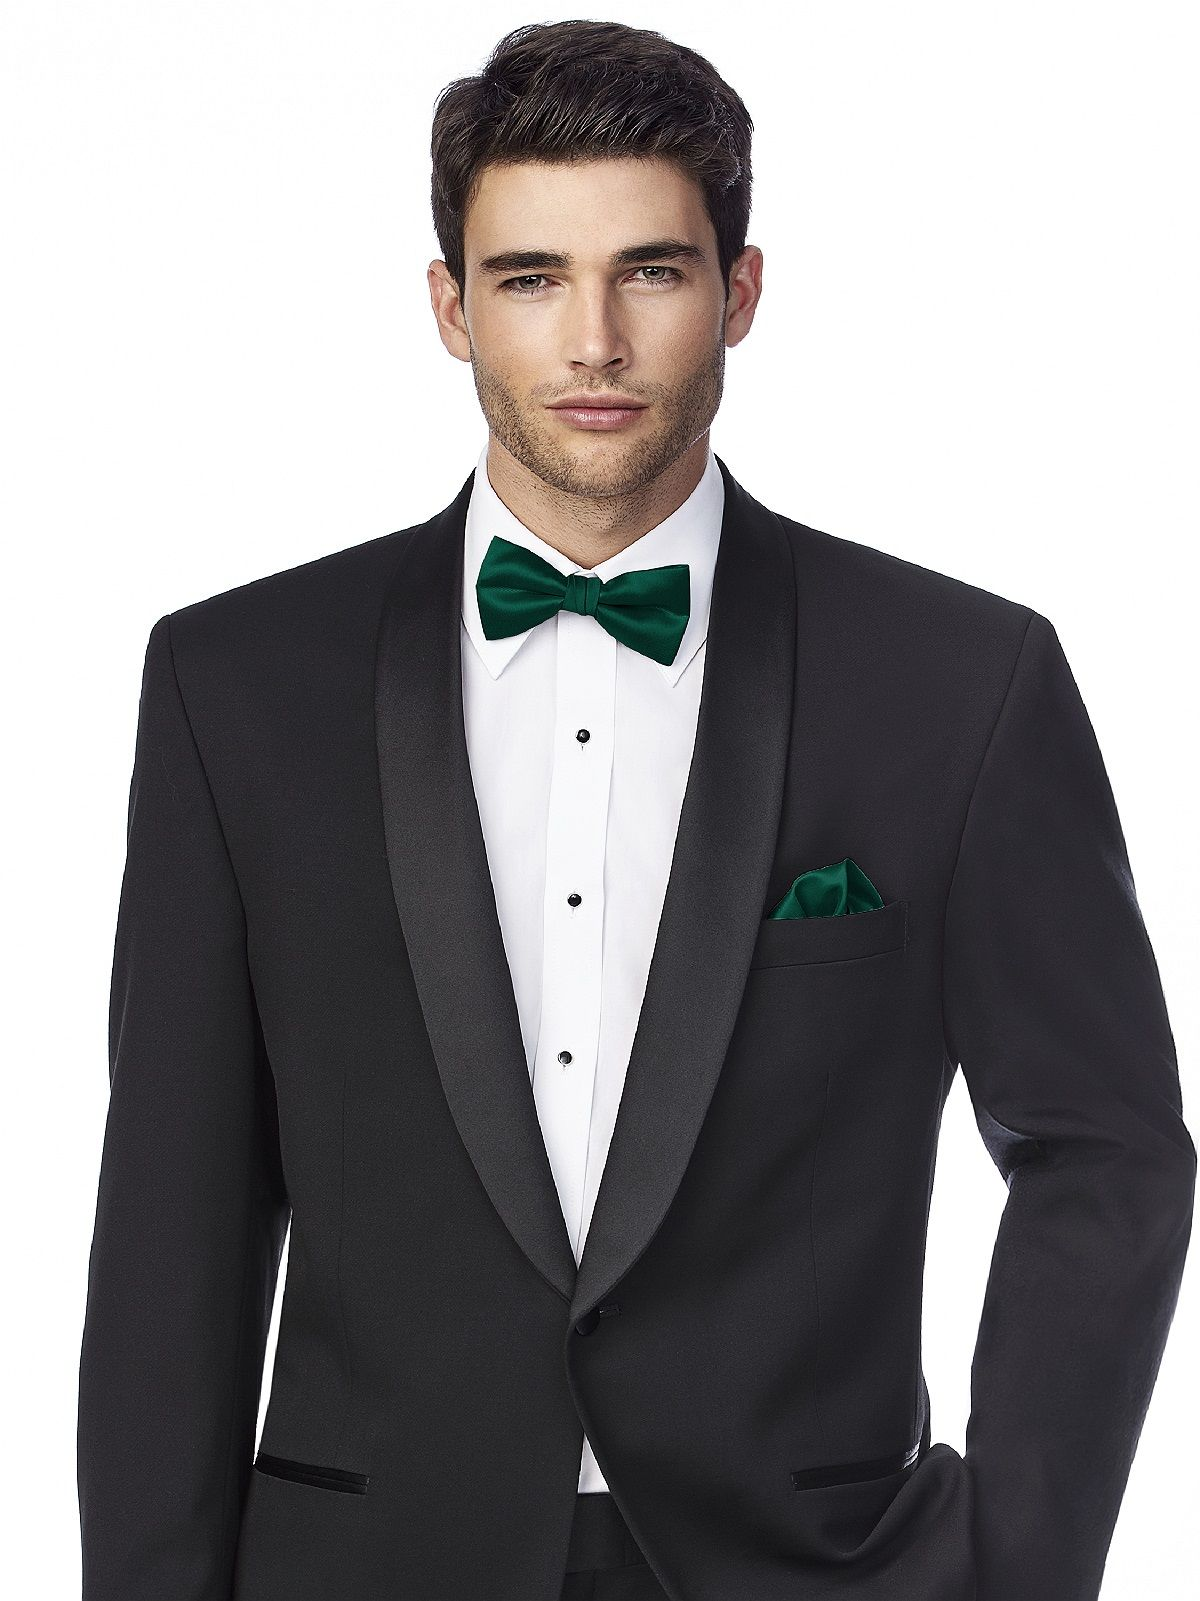 This is an example of the grooms/groomsmen attire. They